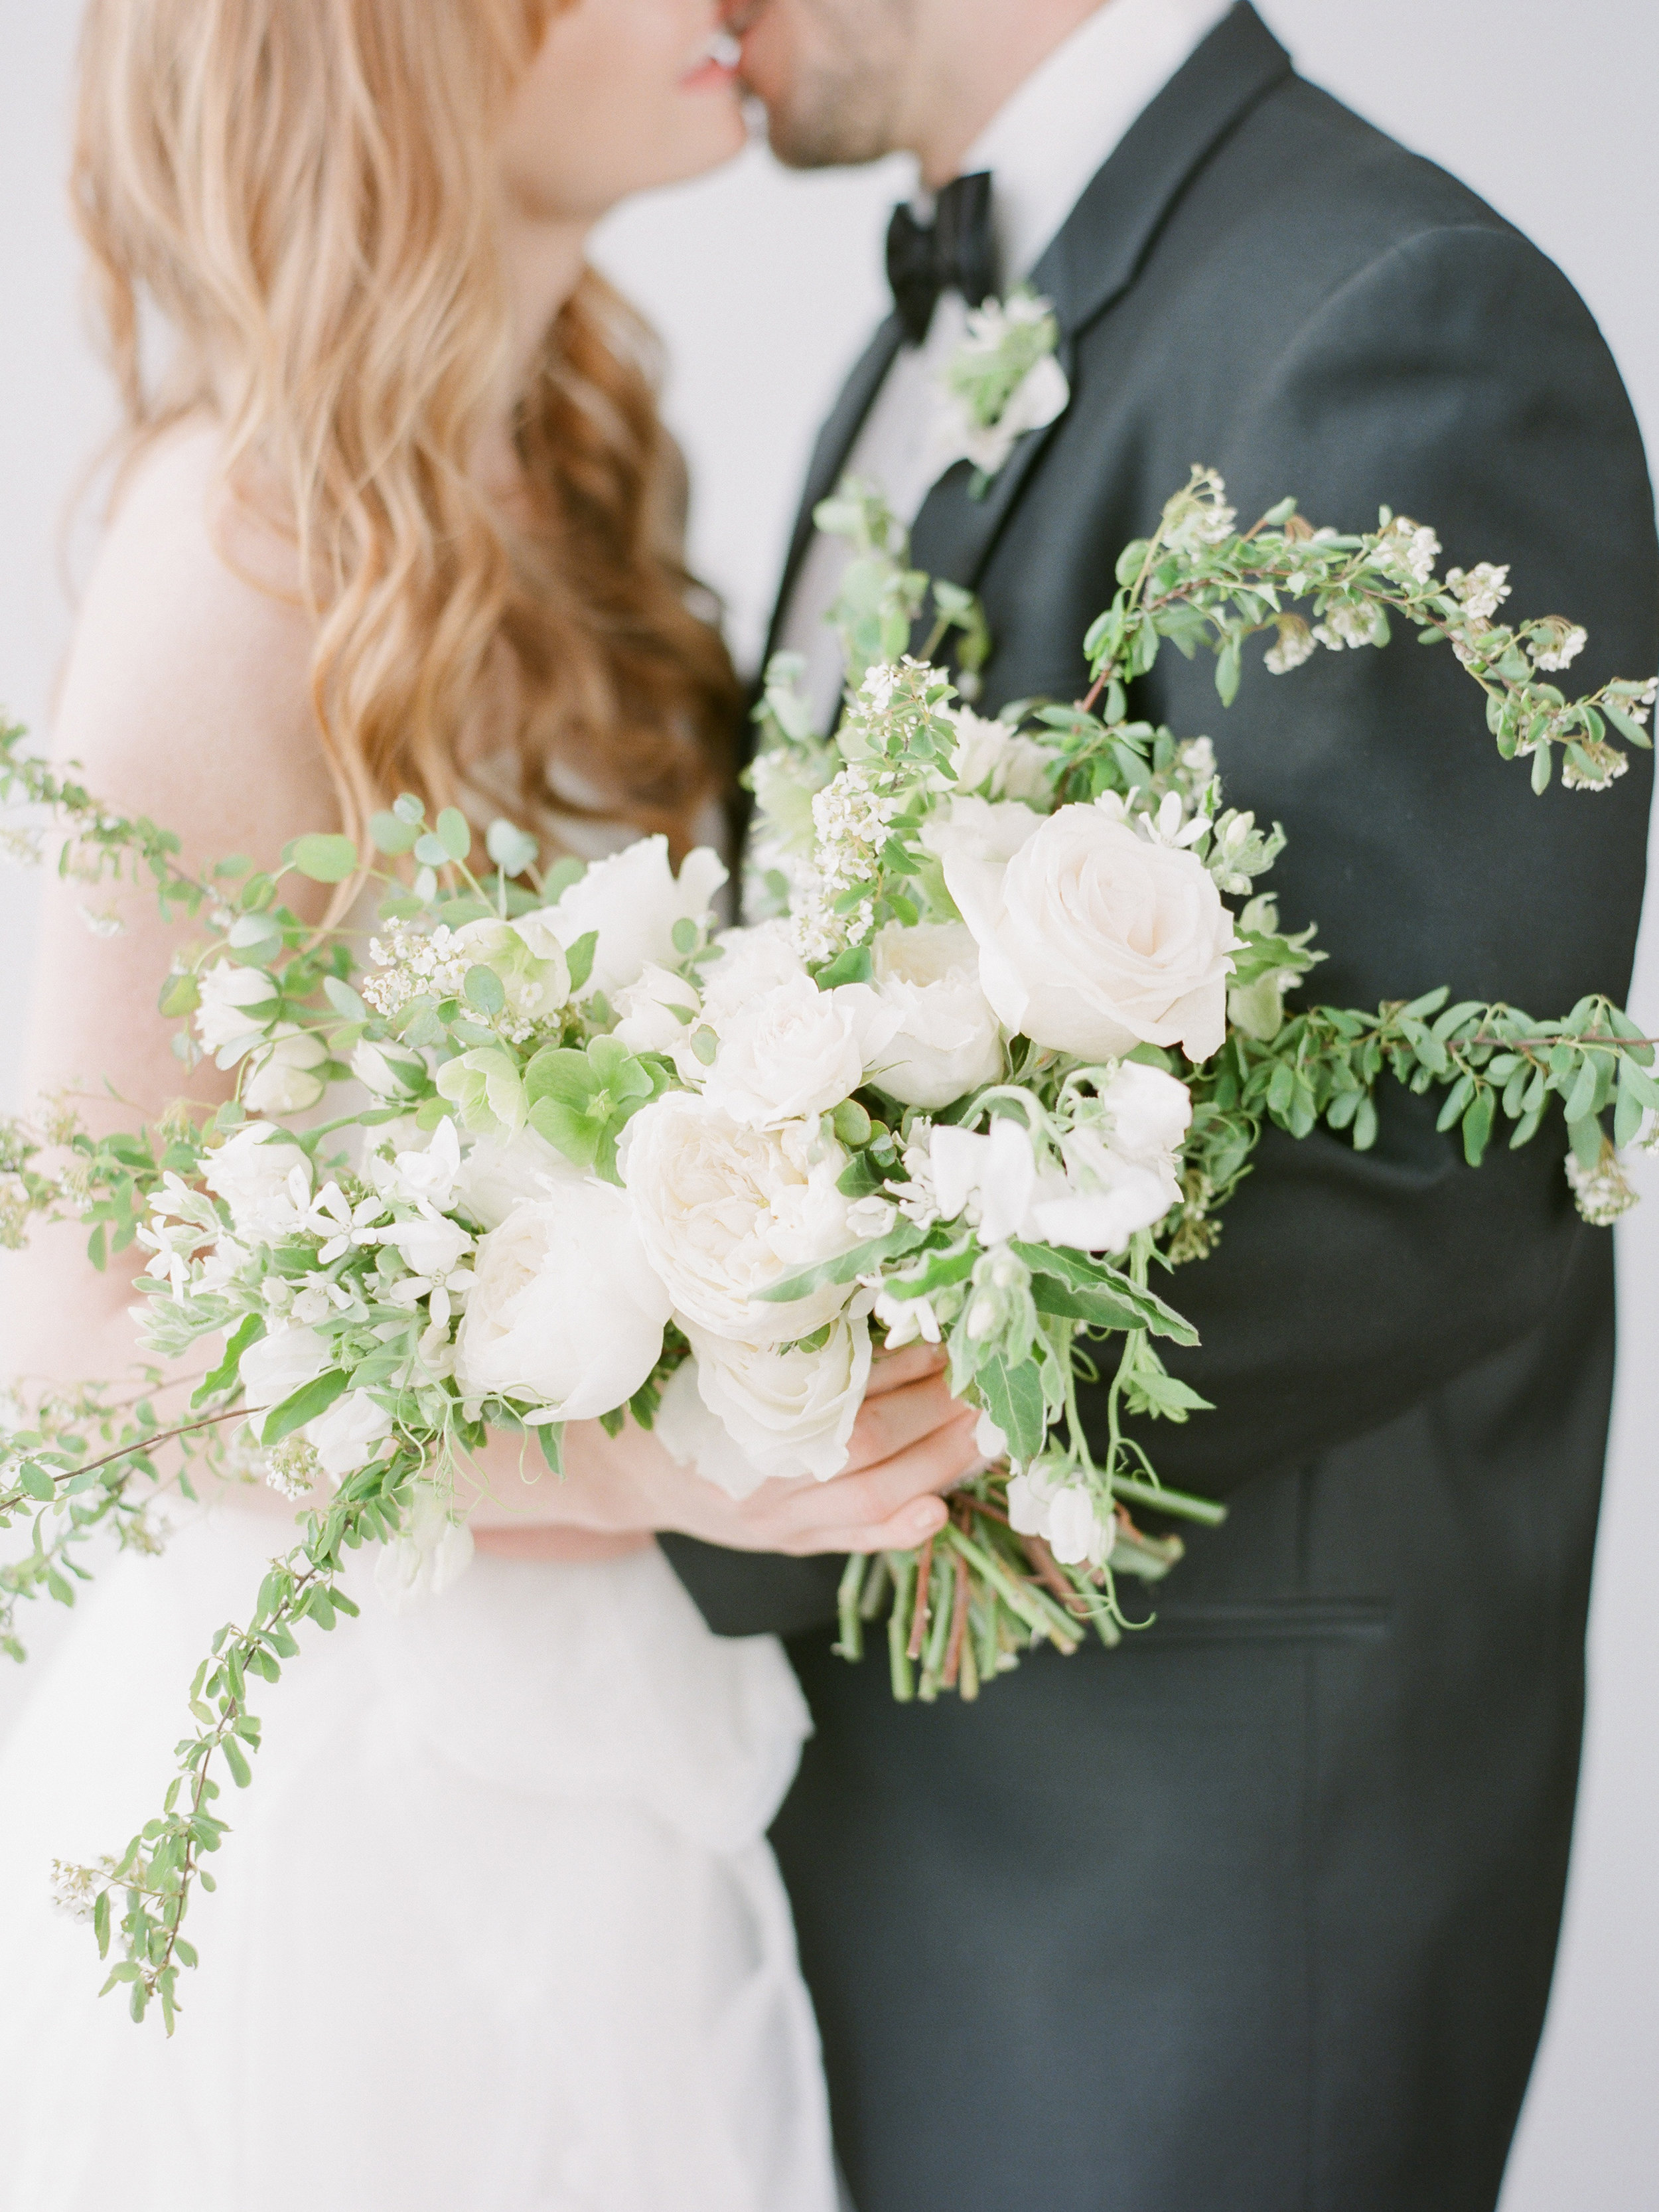 """Words of Affirmation - """"Carre is an absolute sweetheart, and she was very thorough and professional through the whole process. From the first meeting, Carre was well organized and seemed genuinely interested in my big day. Carre took what visions I had and made my wedding GORGEOUS! I knew I could trust her the whole time to deliver the best flowers for my day - I got so many compliments from the guests.""""-2018 Bride"""